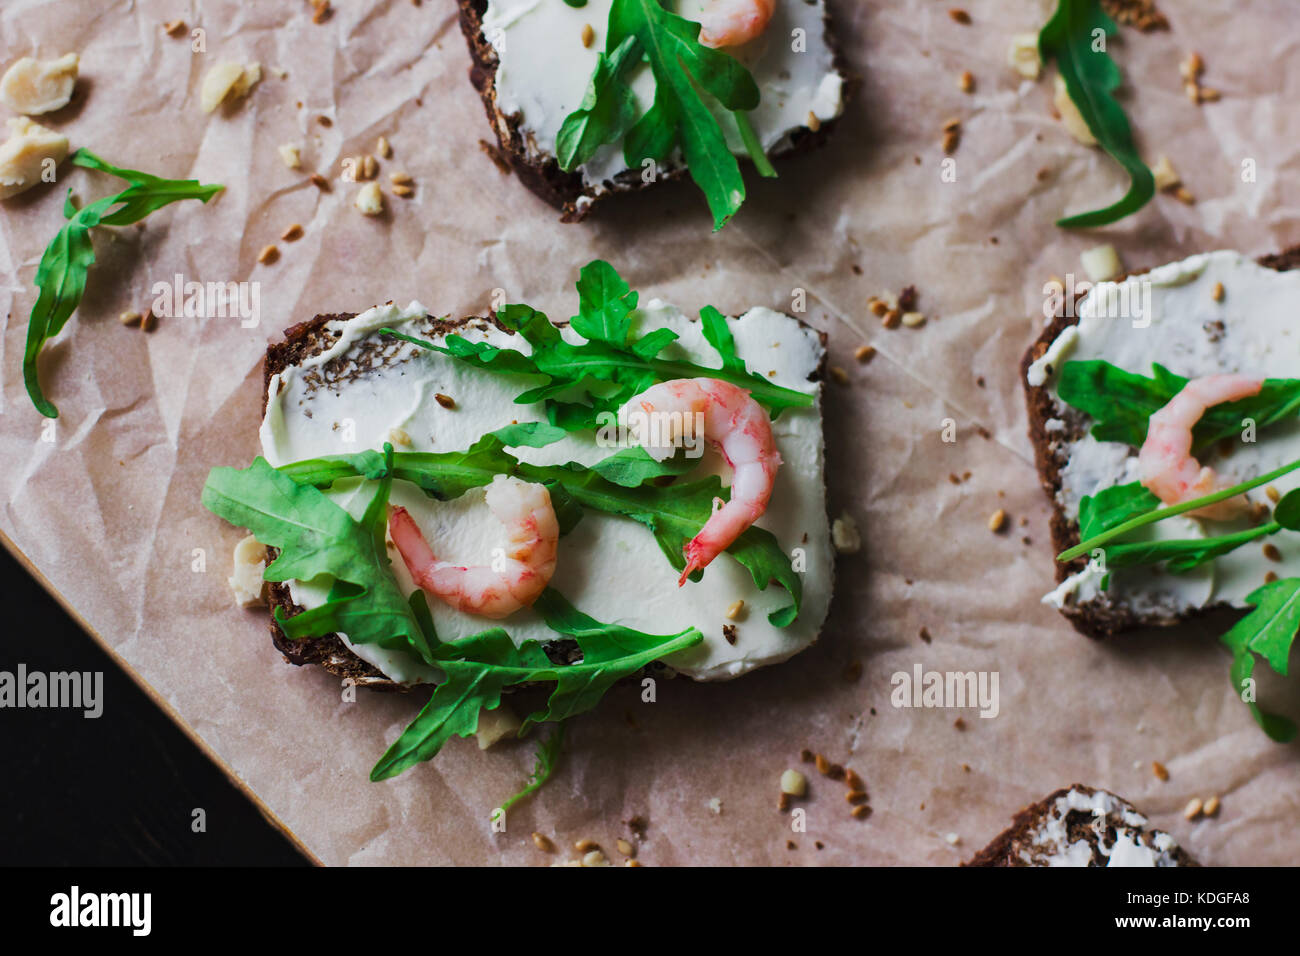 The sandwiches on grain bread with ricotta cheese and shrimp - Stock Image